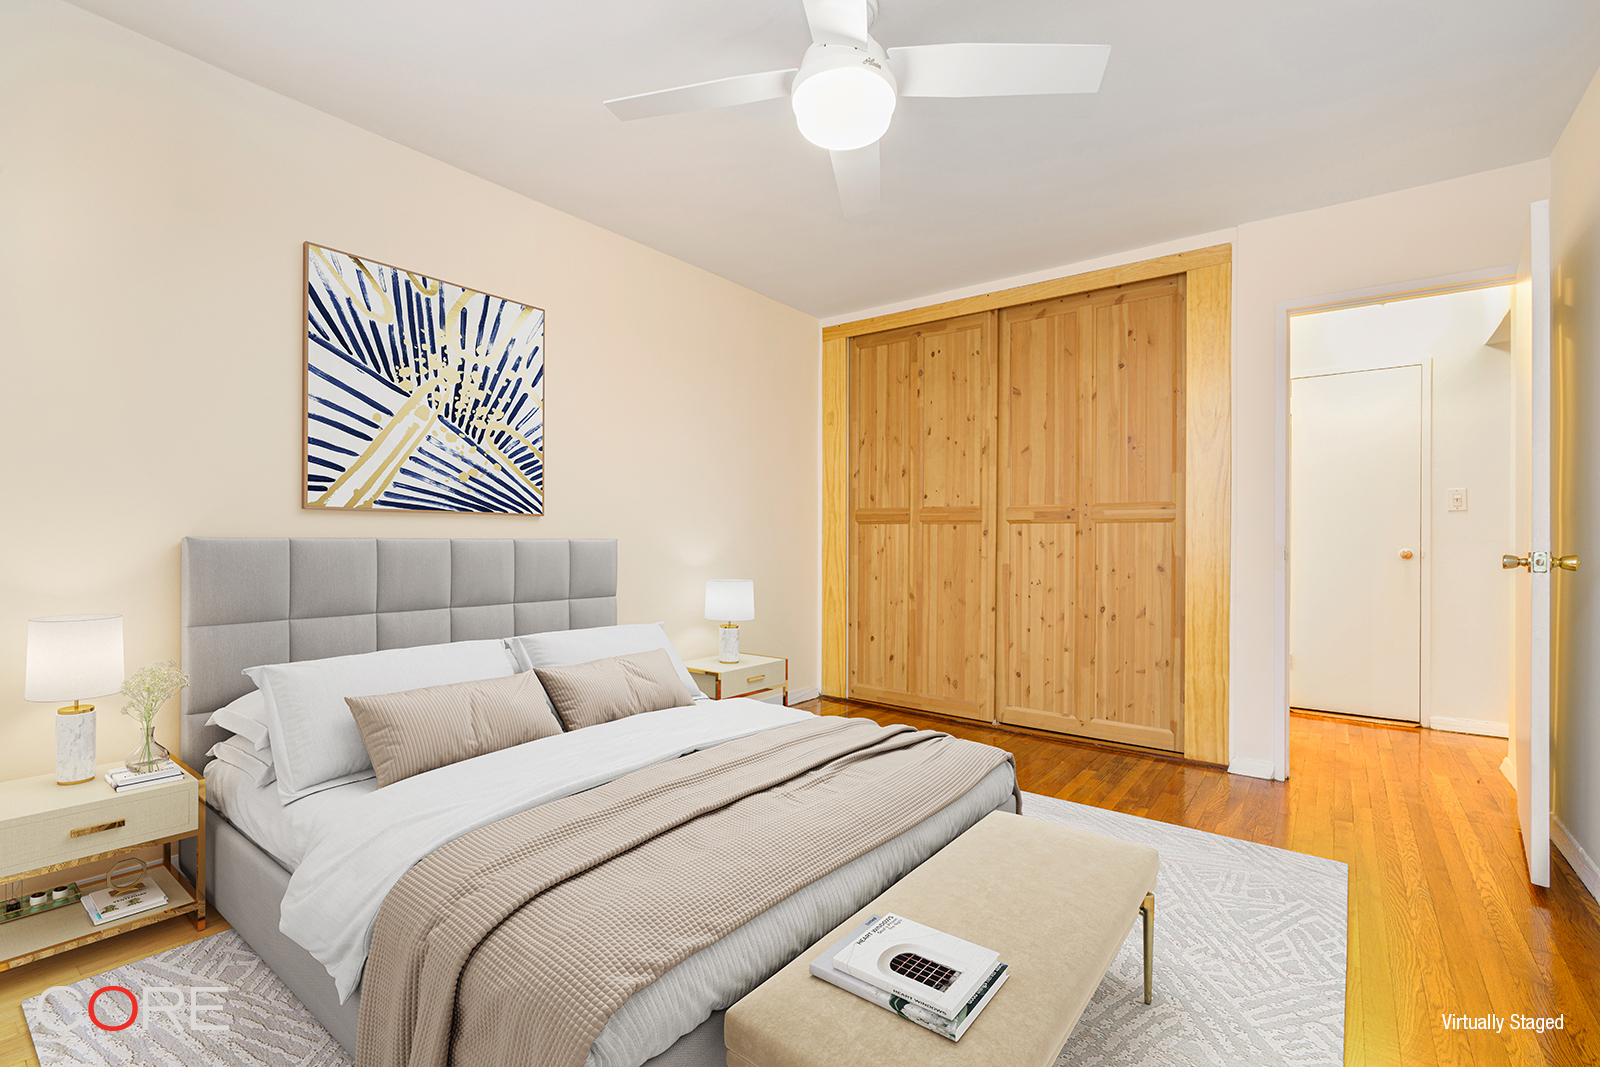 Apartment for sale at 229 East 28th Street, Apt 3M